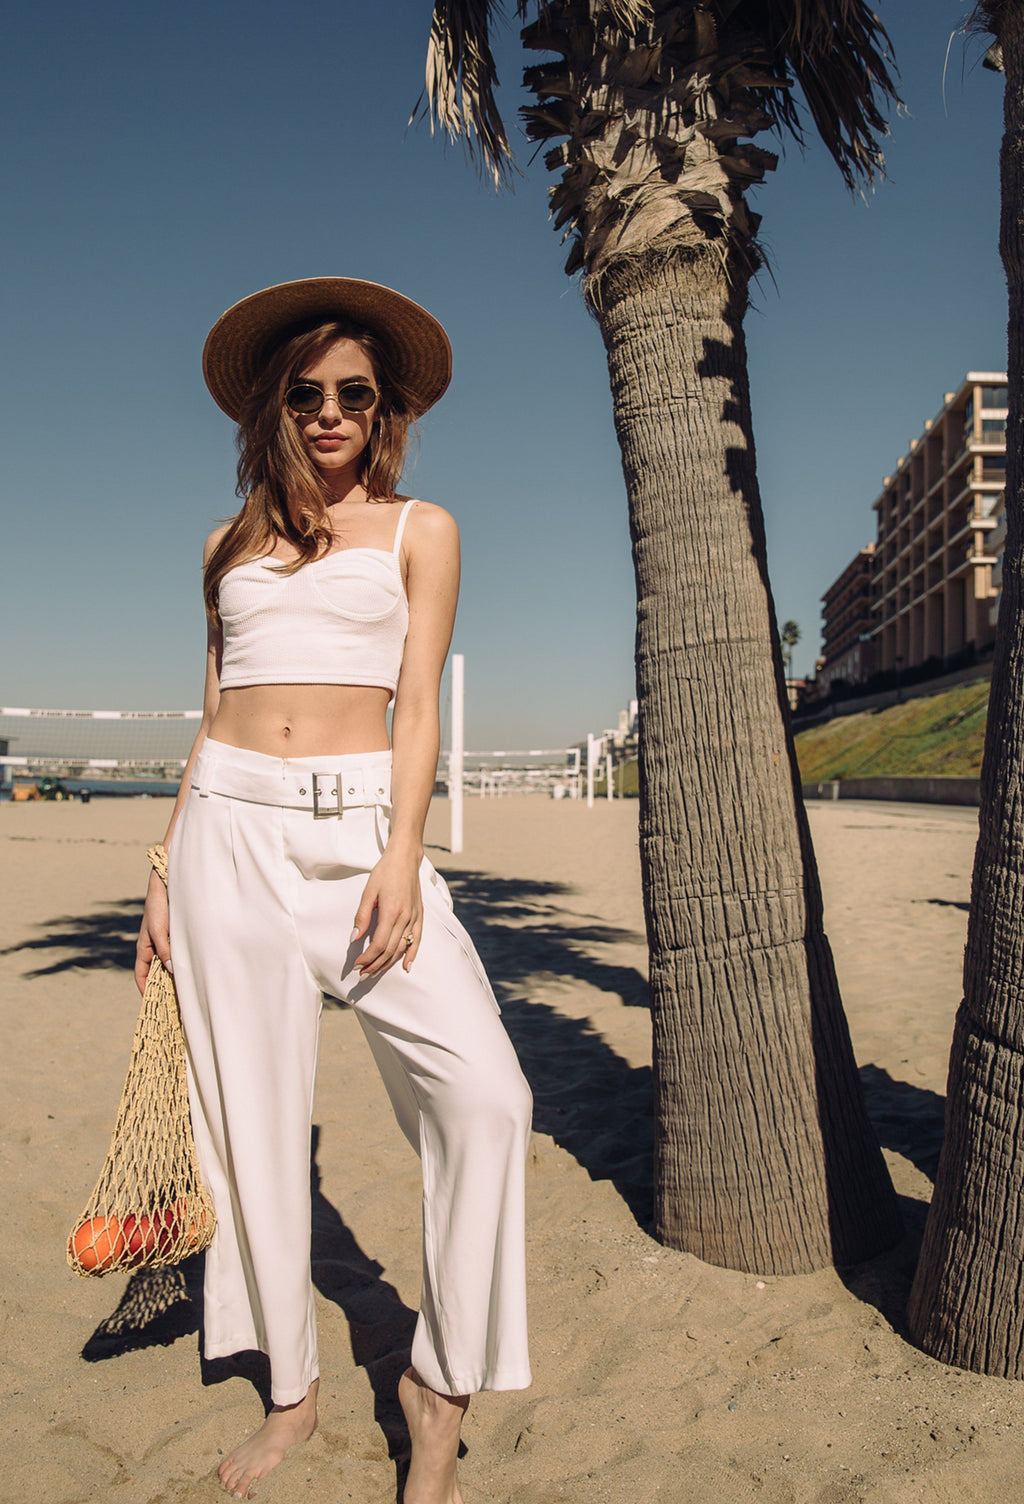 Bottoms - Cropped Pant With Belt